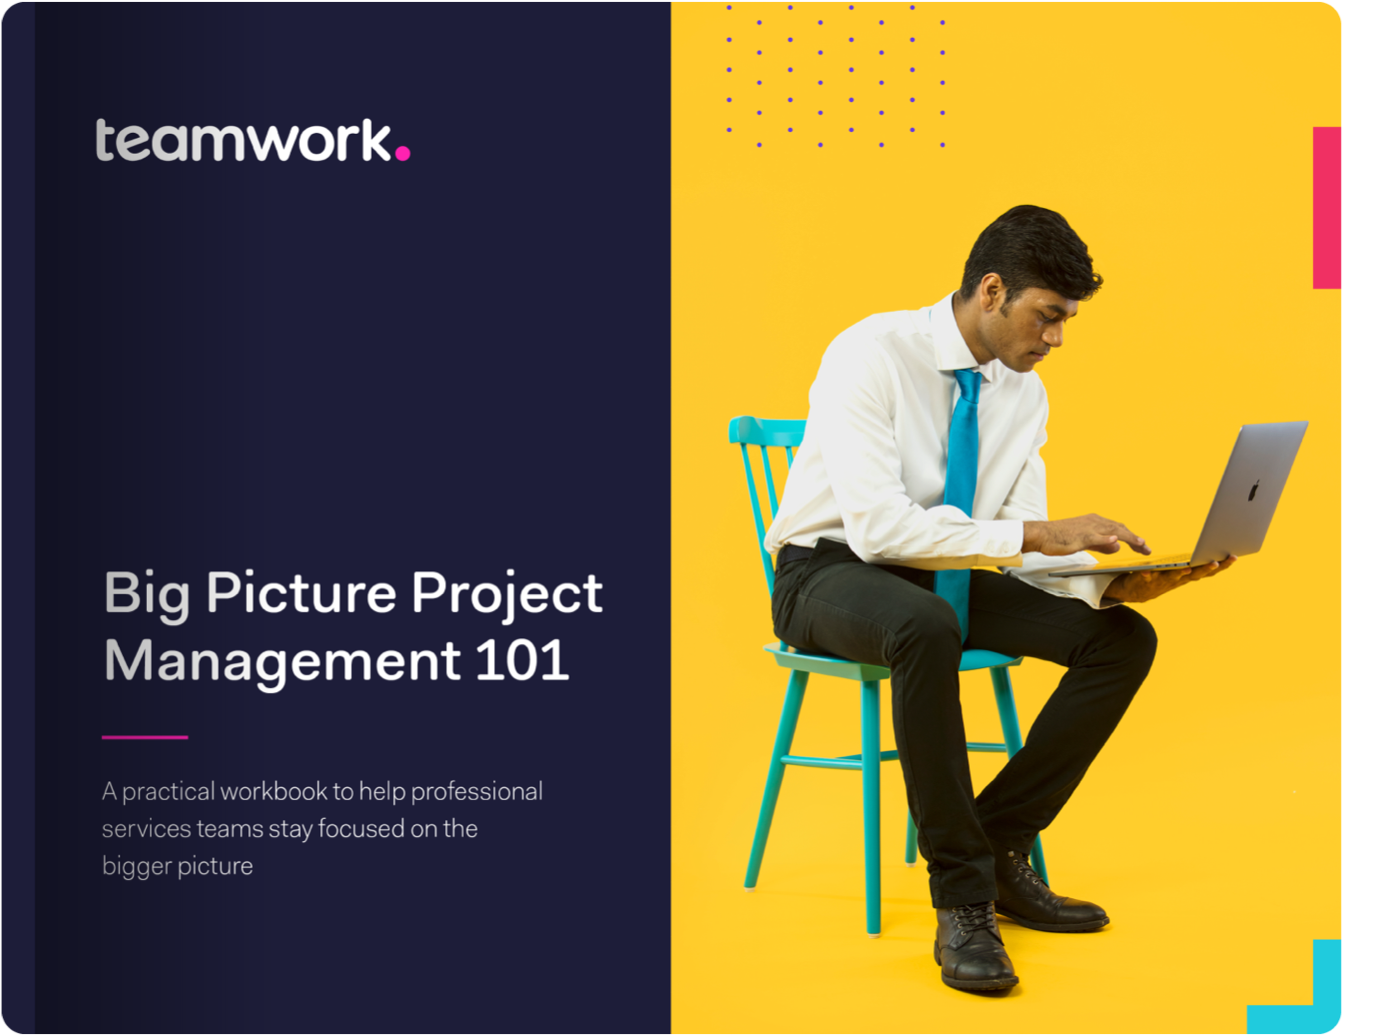 The big picture project management workbook